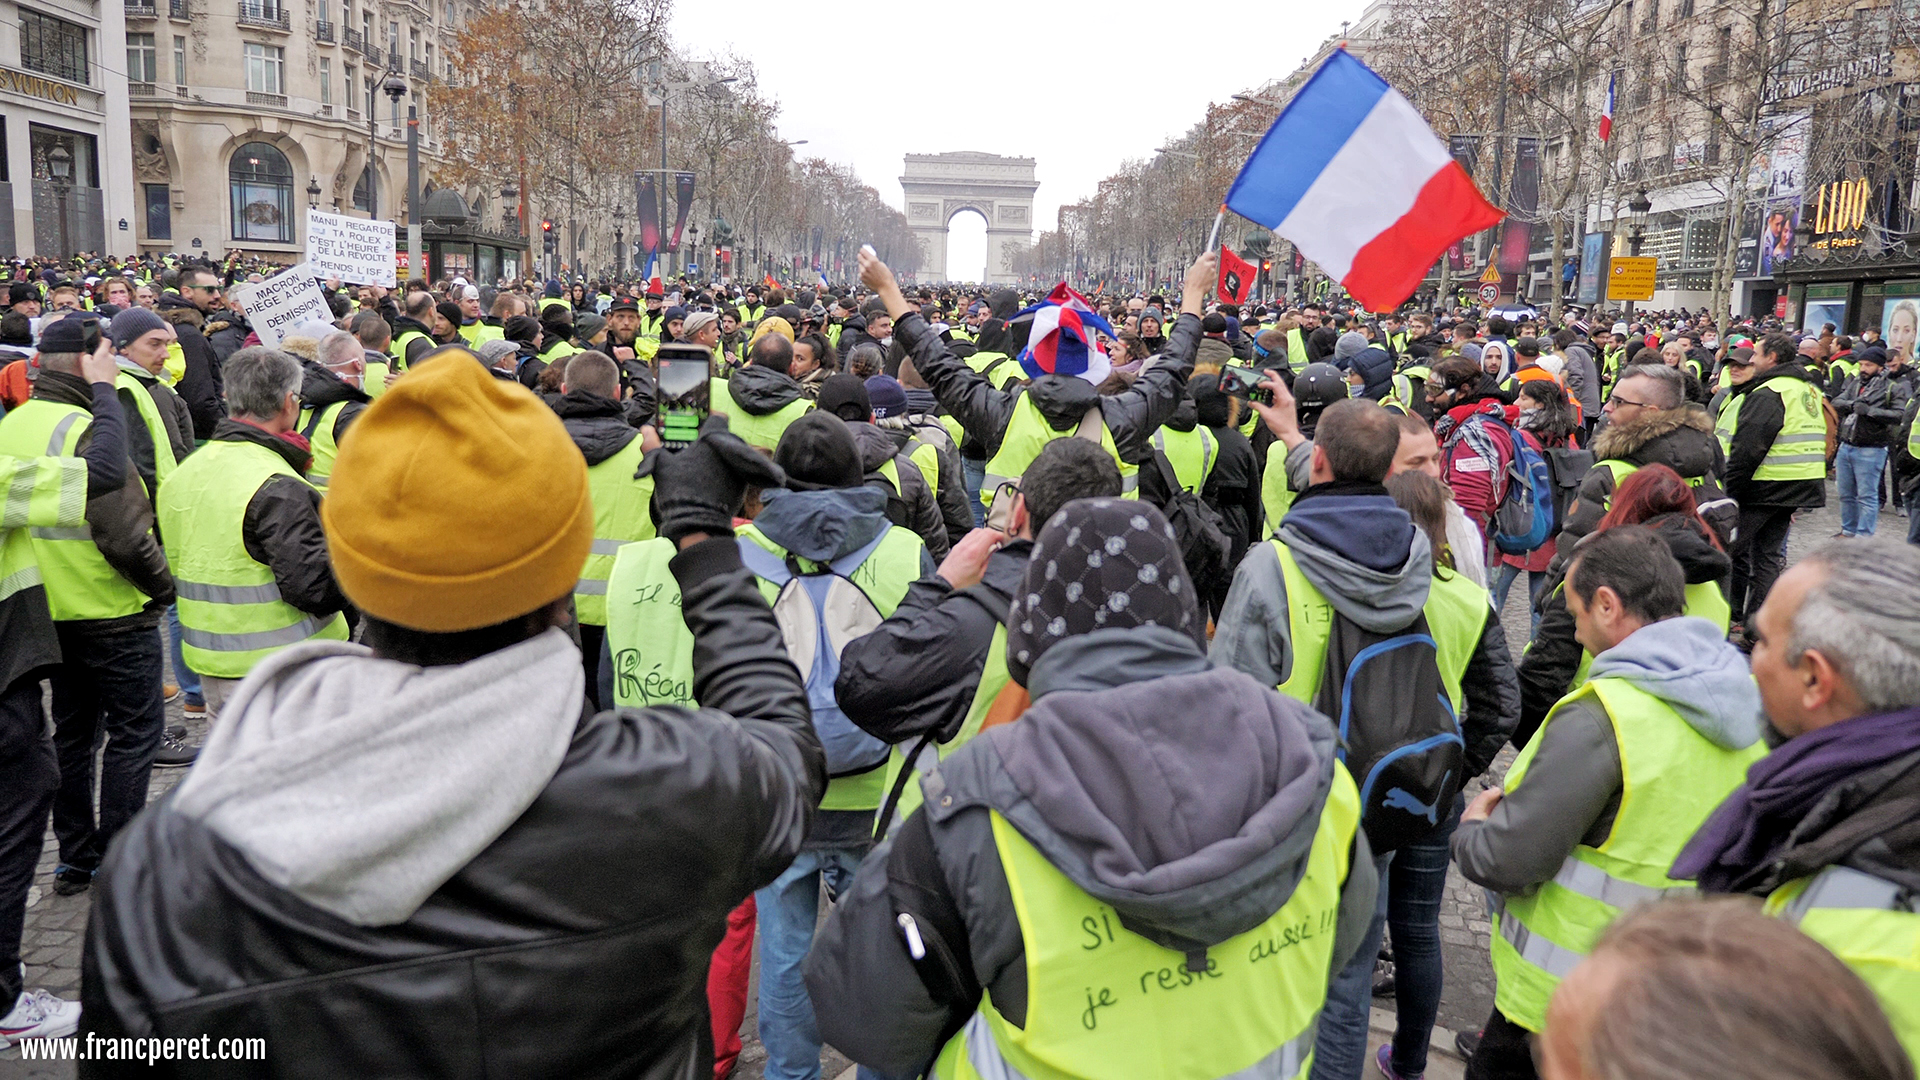 The leftover countryside crowd filling the luxury avenue of Champs Elysees.